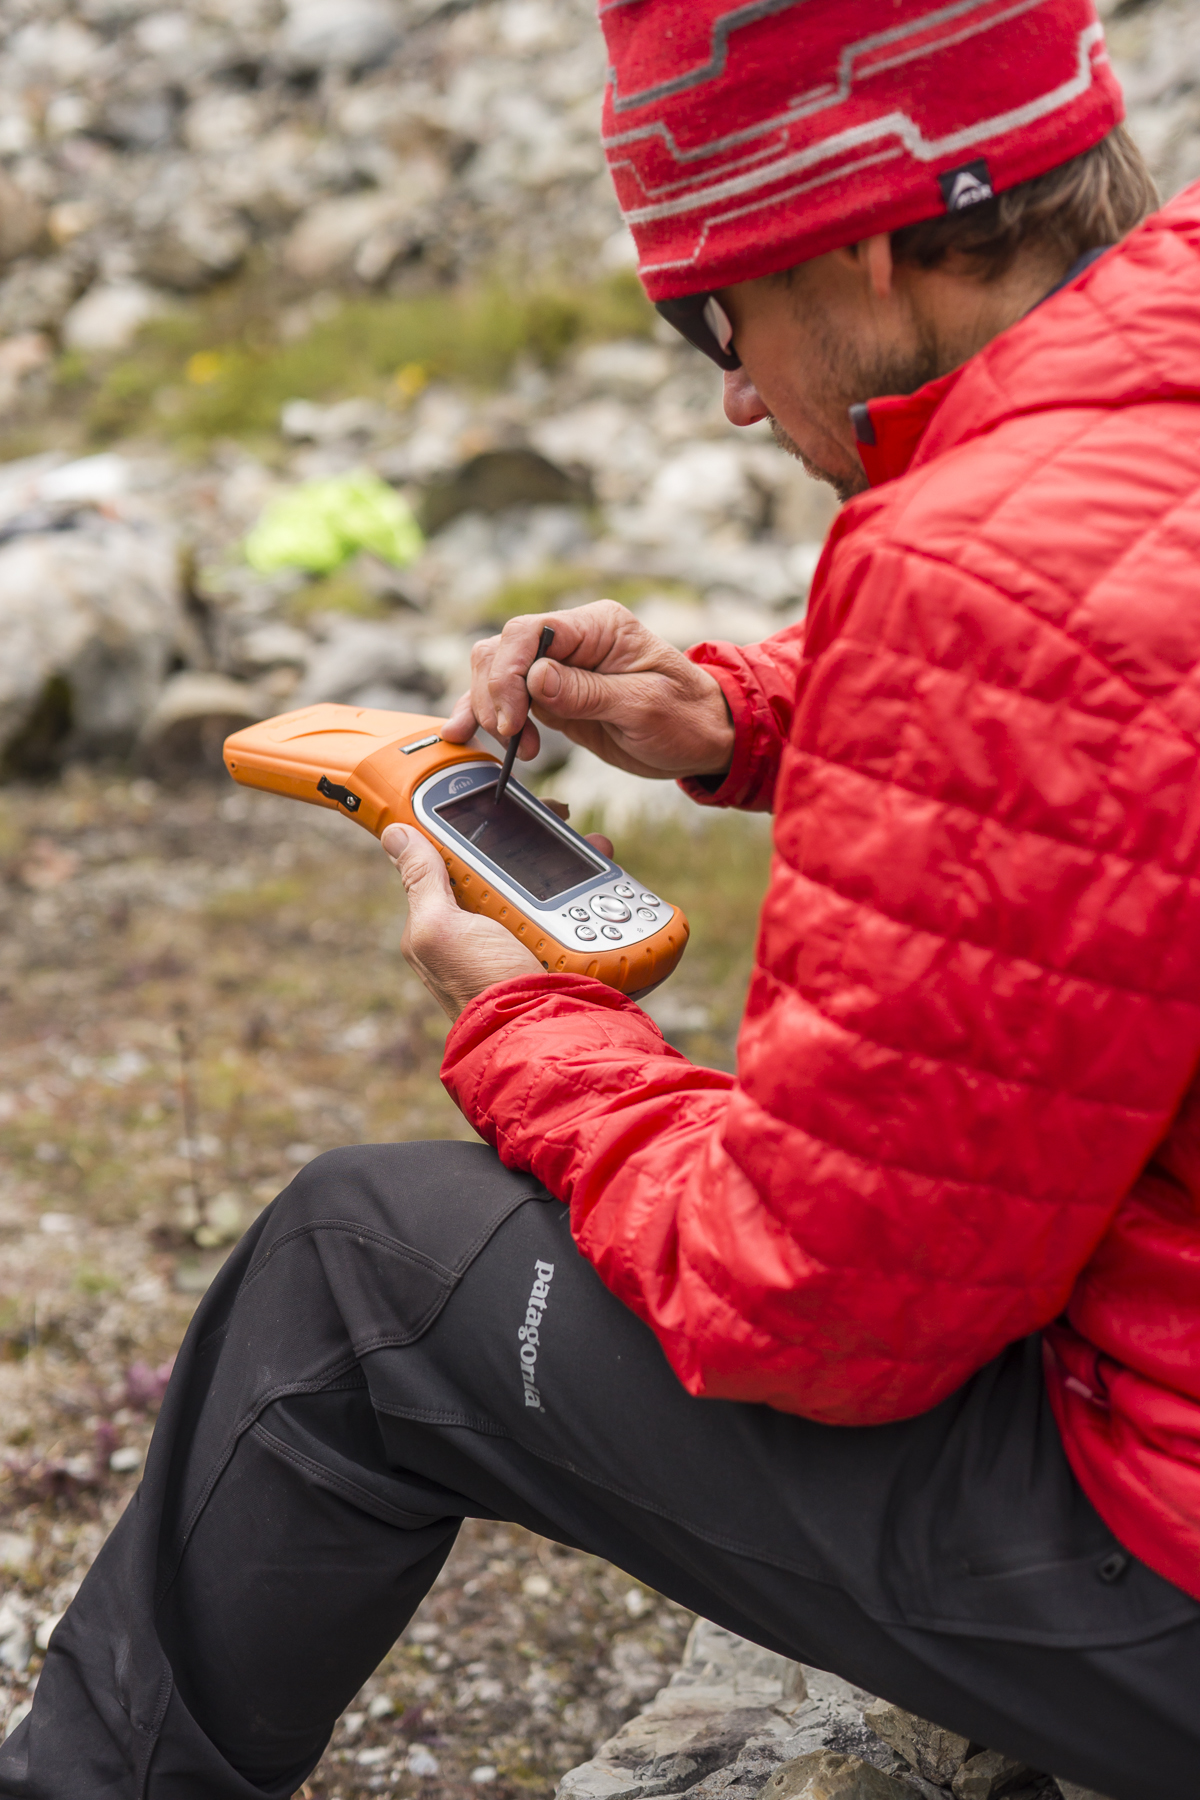 Setting up the Archer Field PC to collect GPS data. Photo credit: Mark Fisher at http://www.fishercreative.com/ . Instagram: @fishercreative